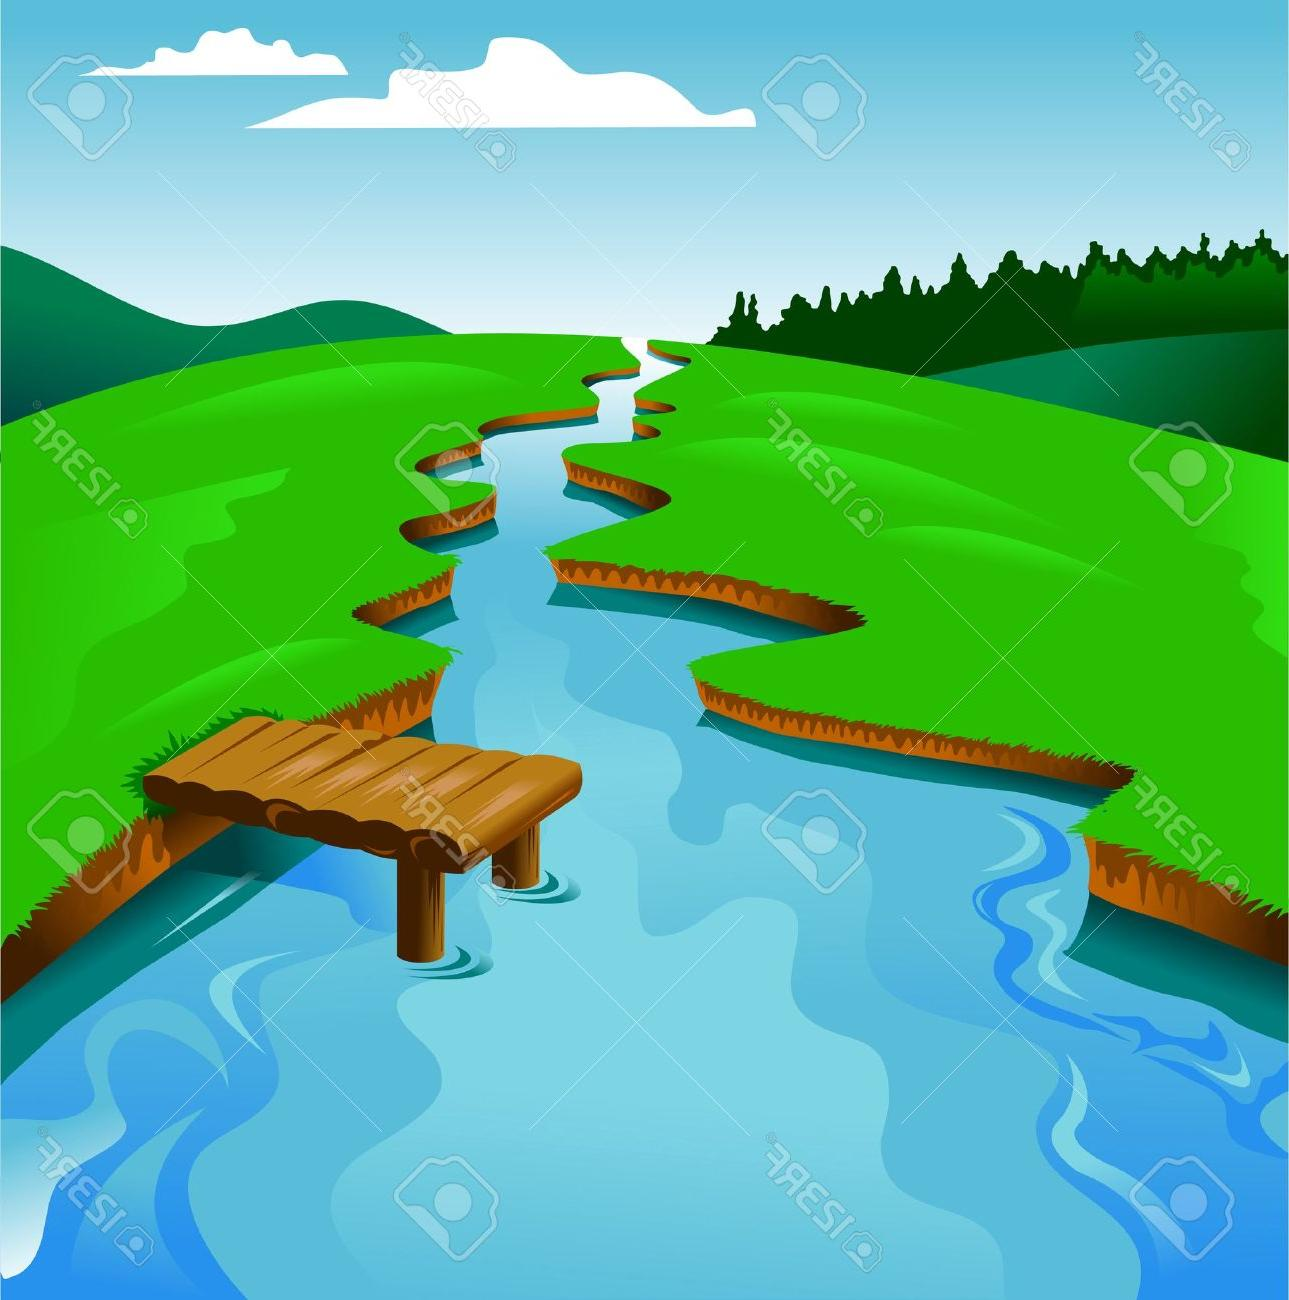 HD Winding River Clip Art Pictures » Free Vector Art, Images.